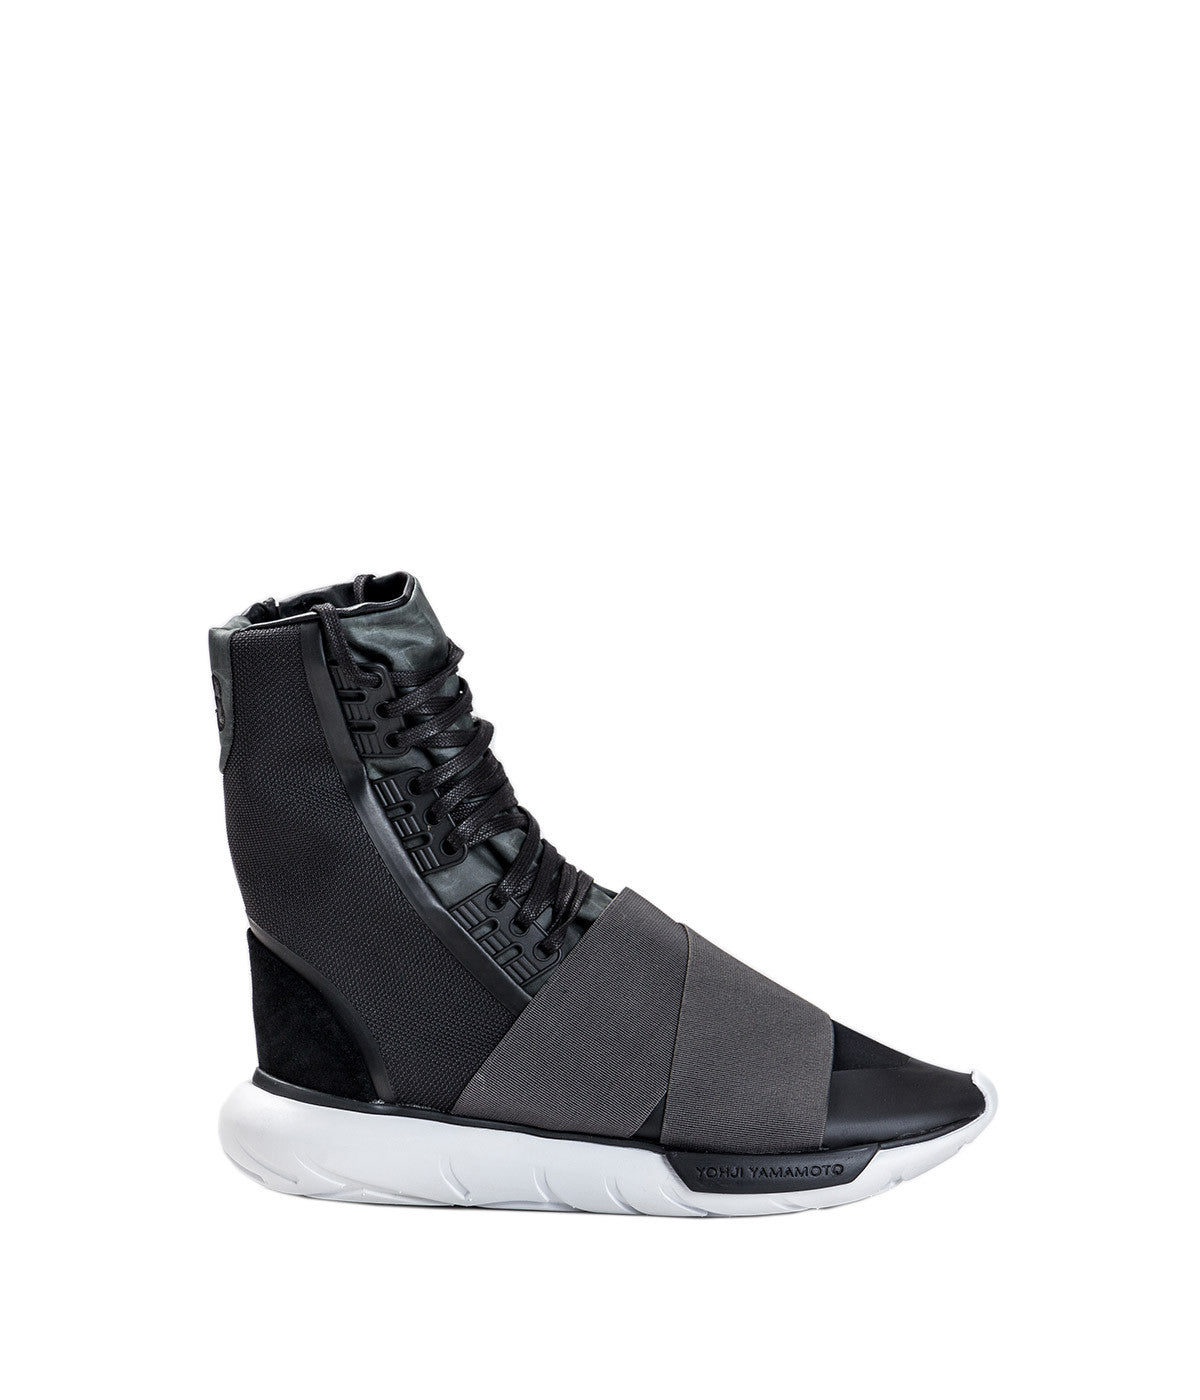 Black Qasa Boot High-Top Sneakers